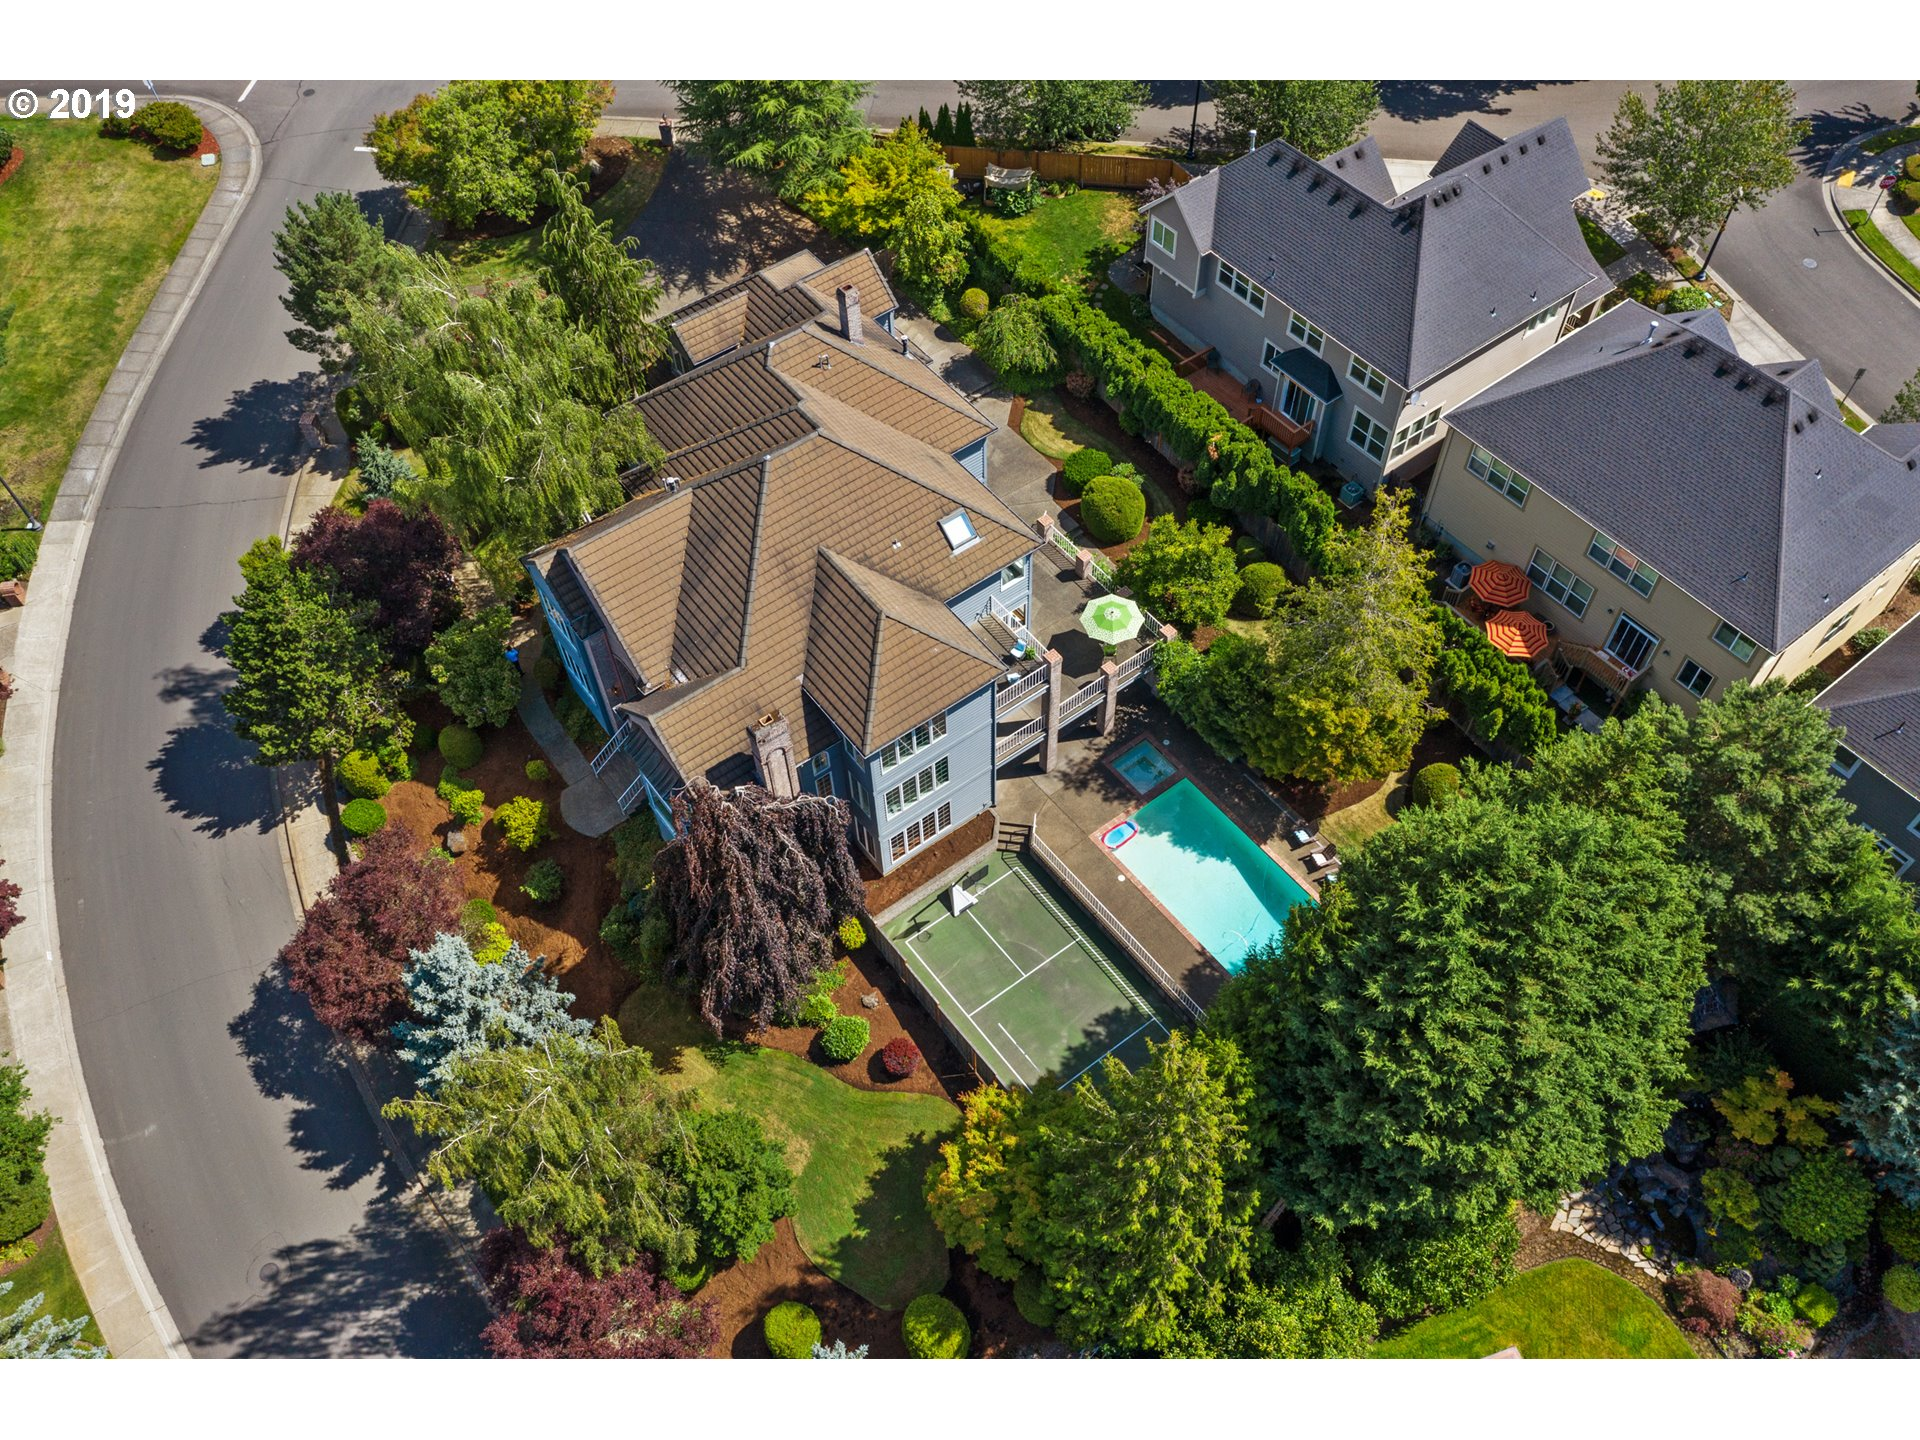 3110 NW 112TH PL NW, Portland OR 97229